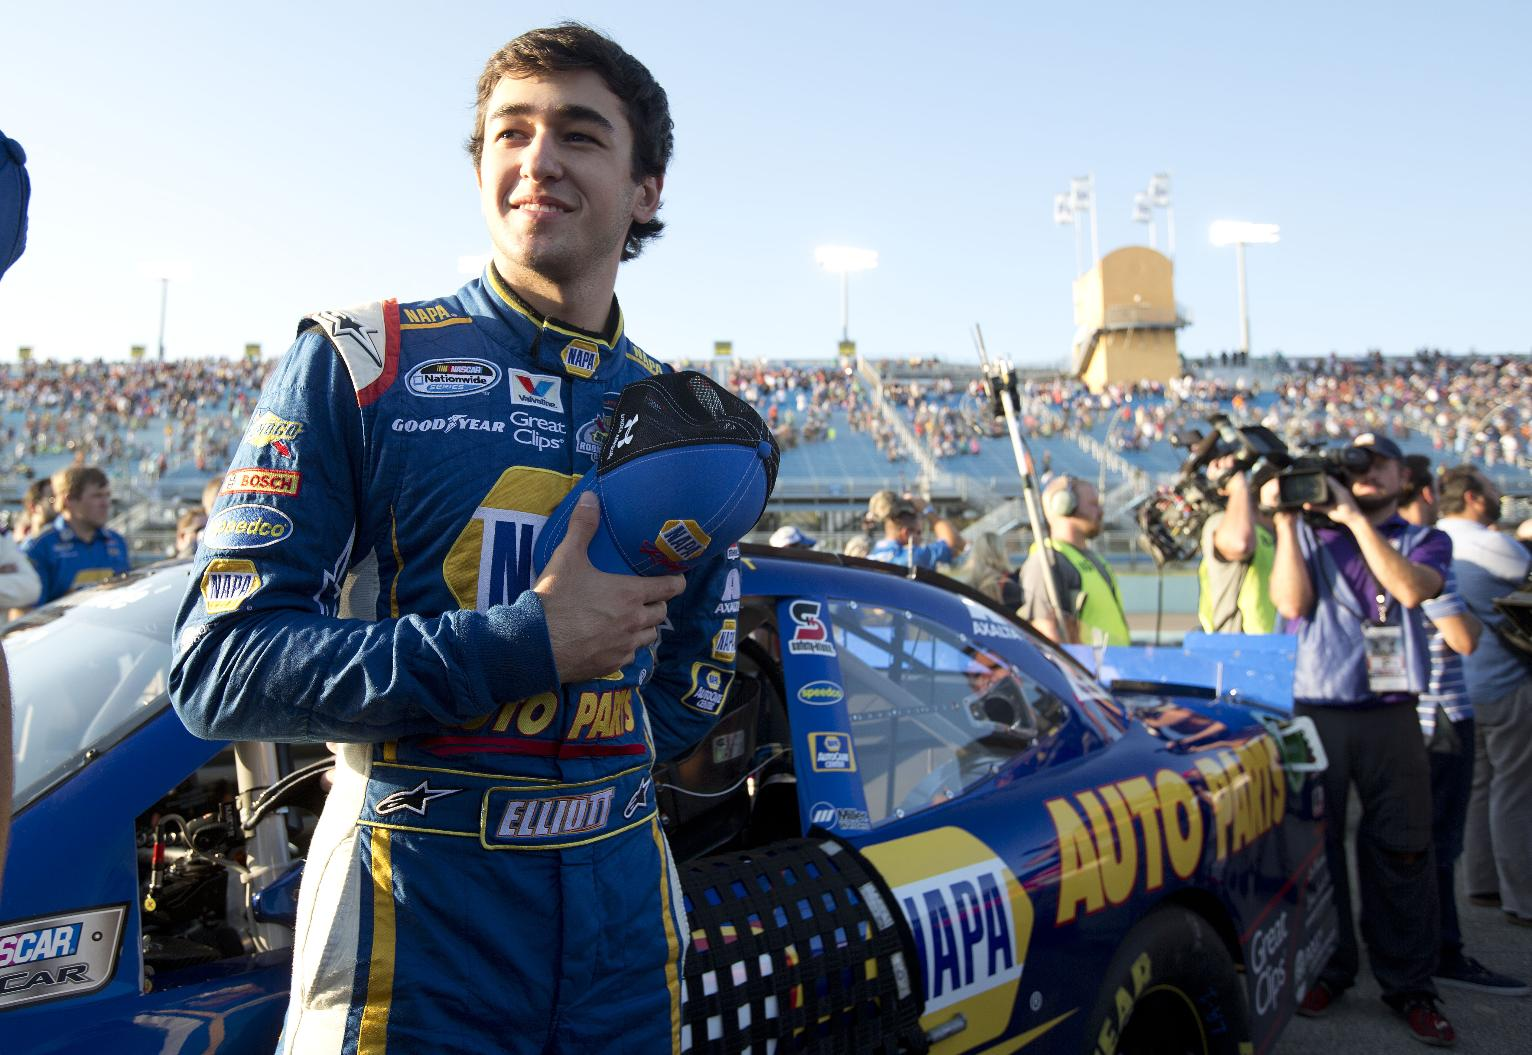 download Chase Elliott to replace Jeff Gordon in No 24 next 1532x1055